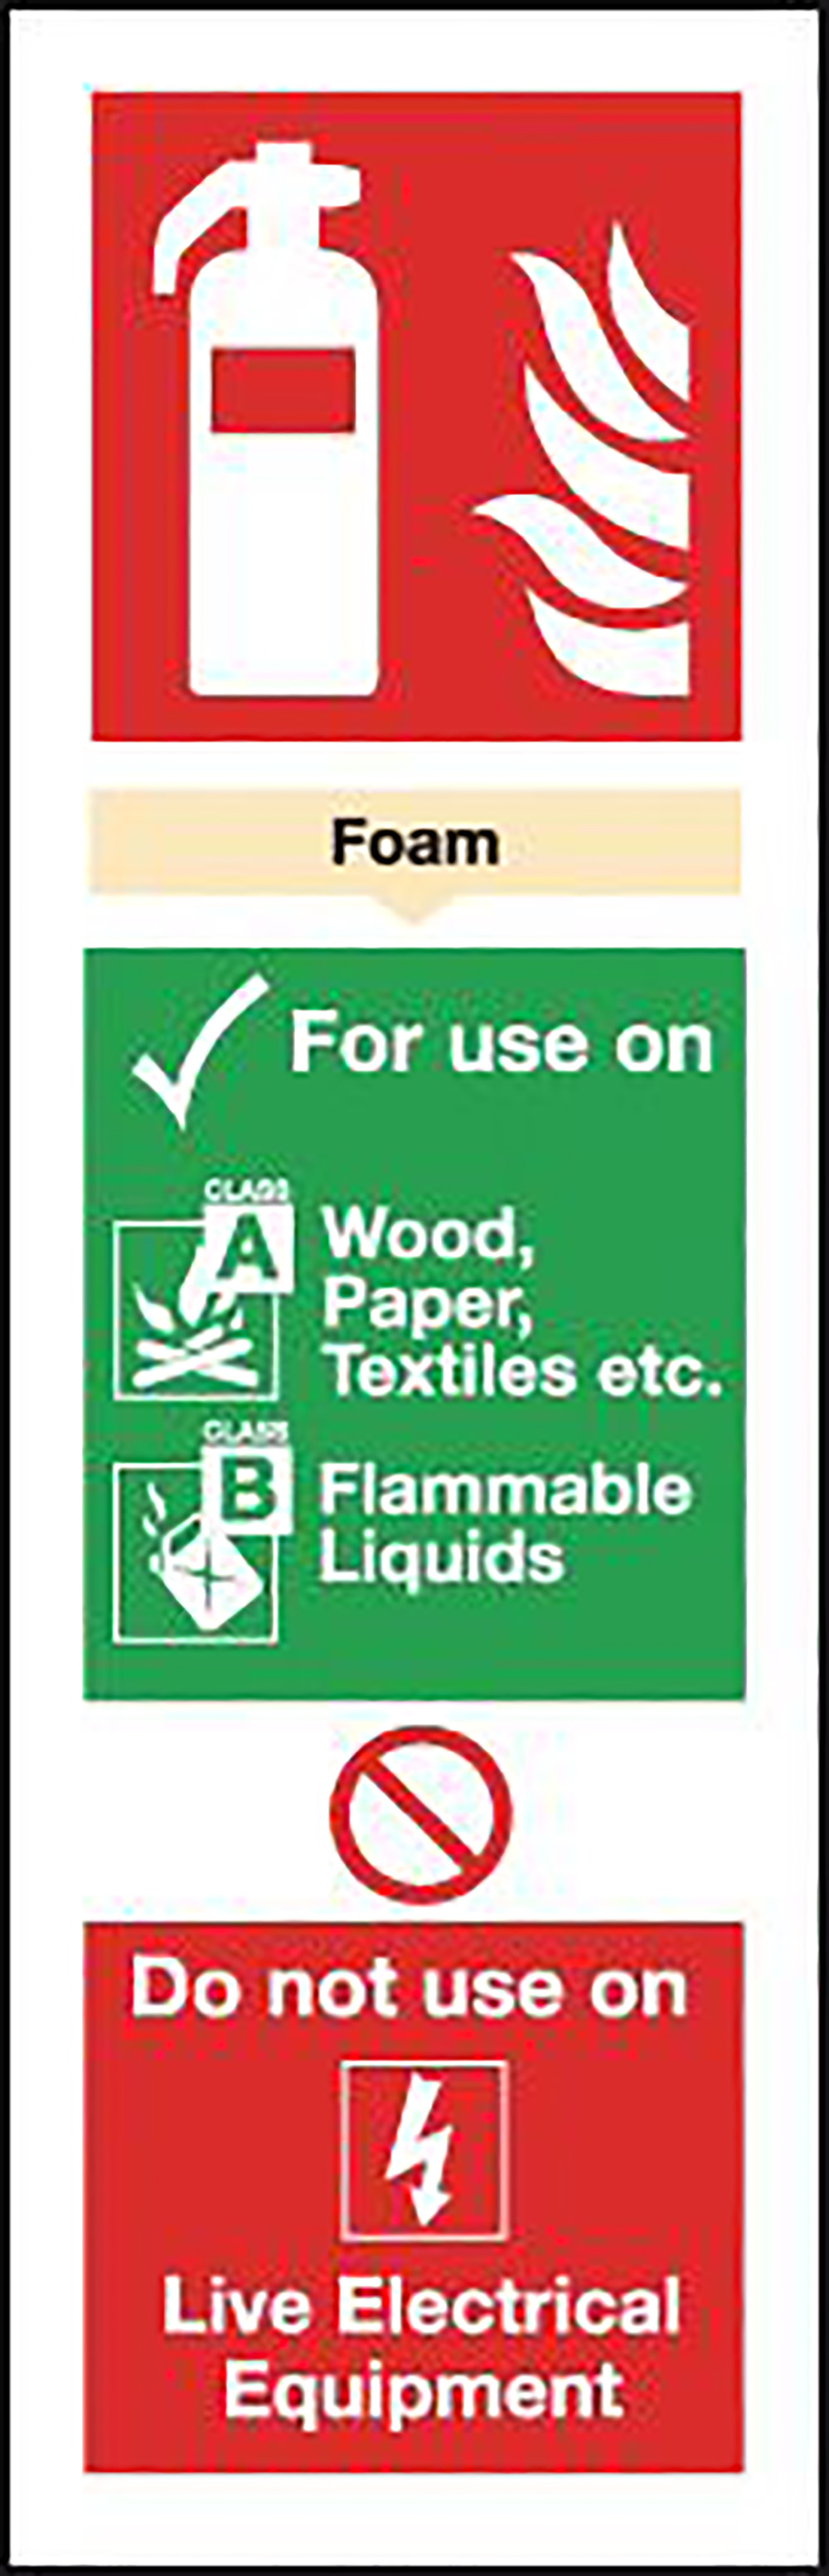 Foam Extinguisher For Use On  300x100mm Self Adhesive Vinyl Safety Sign